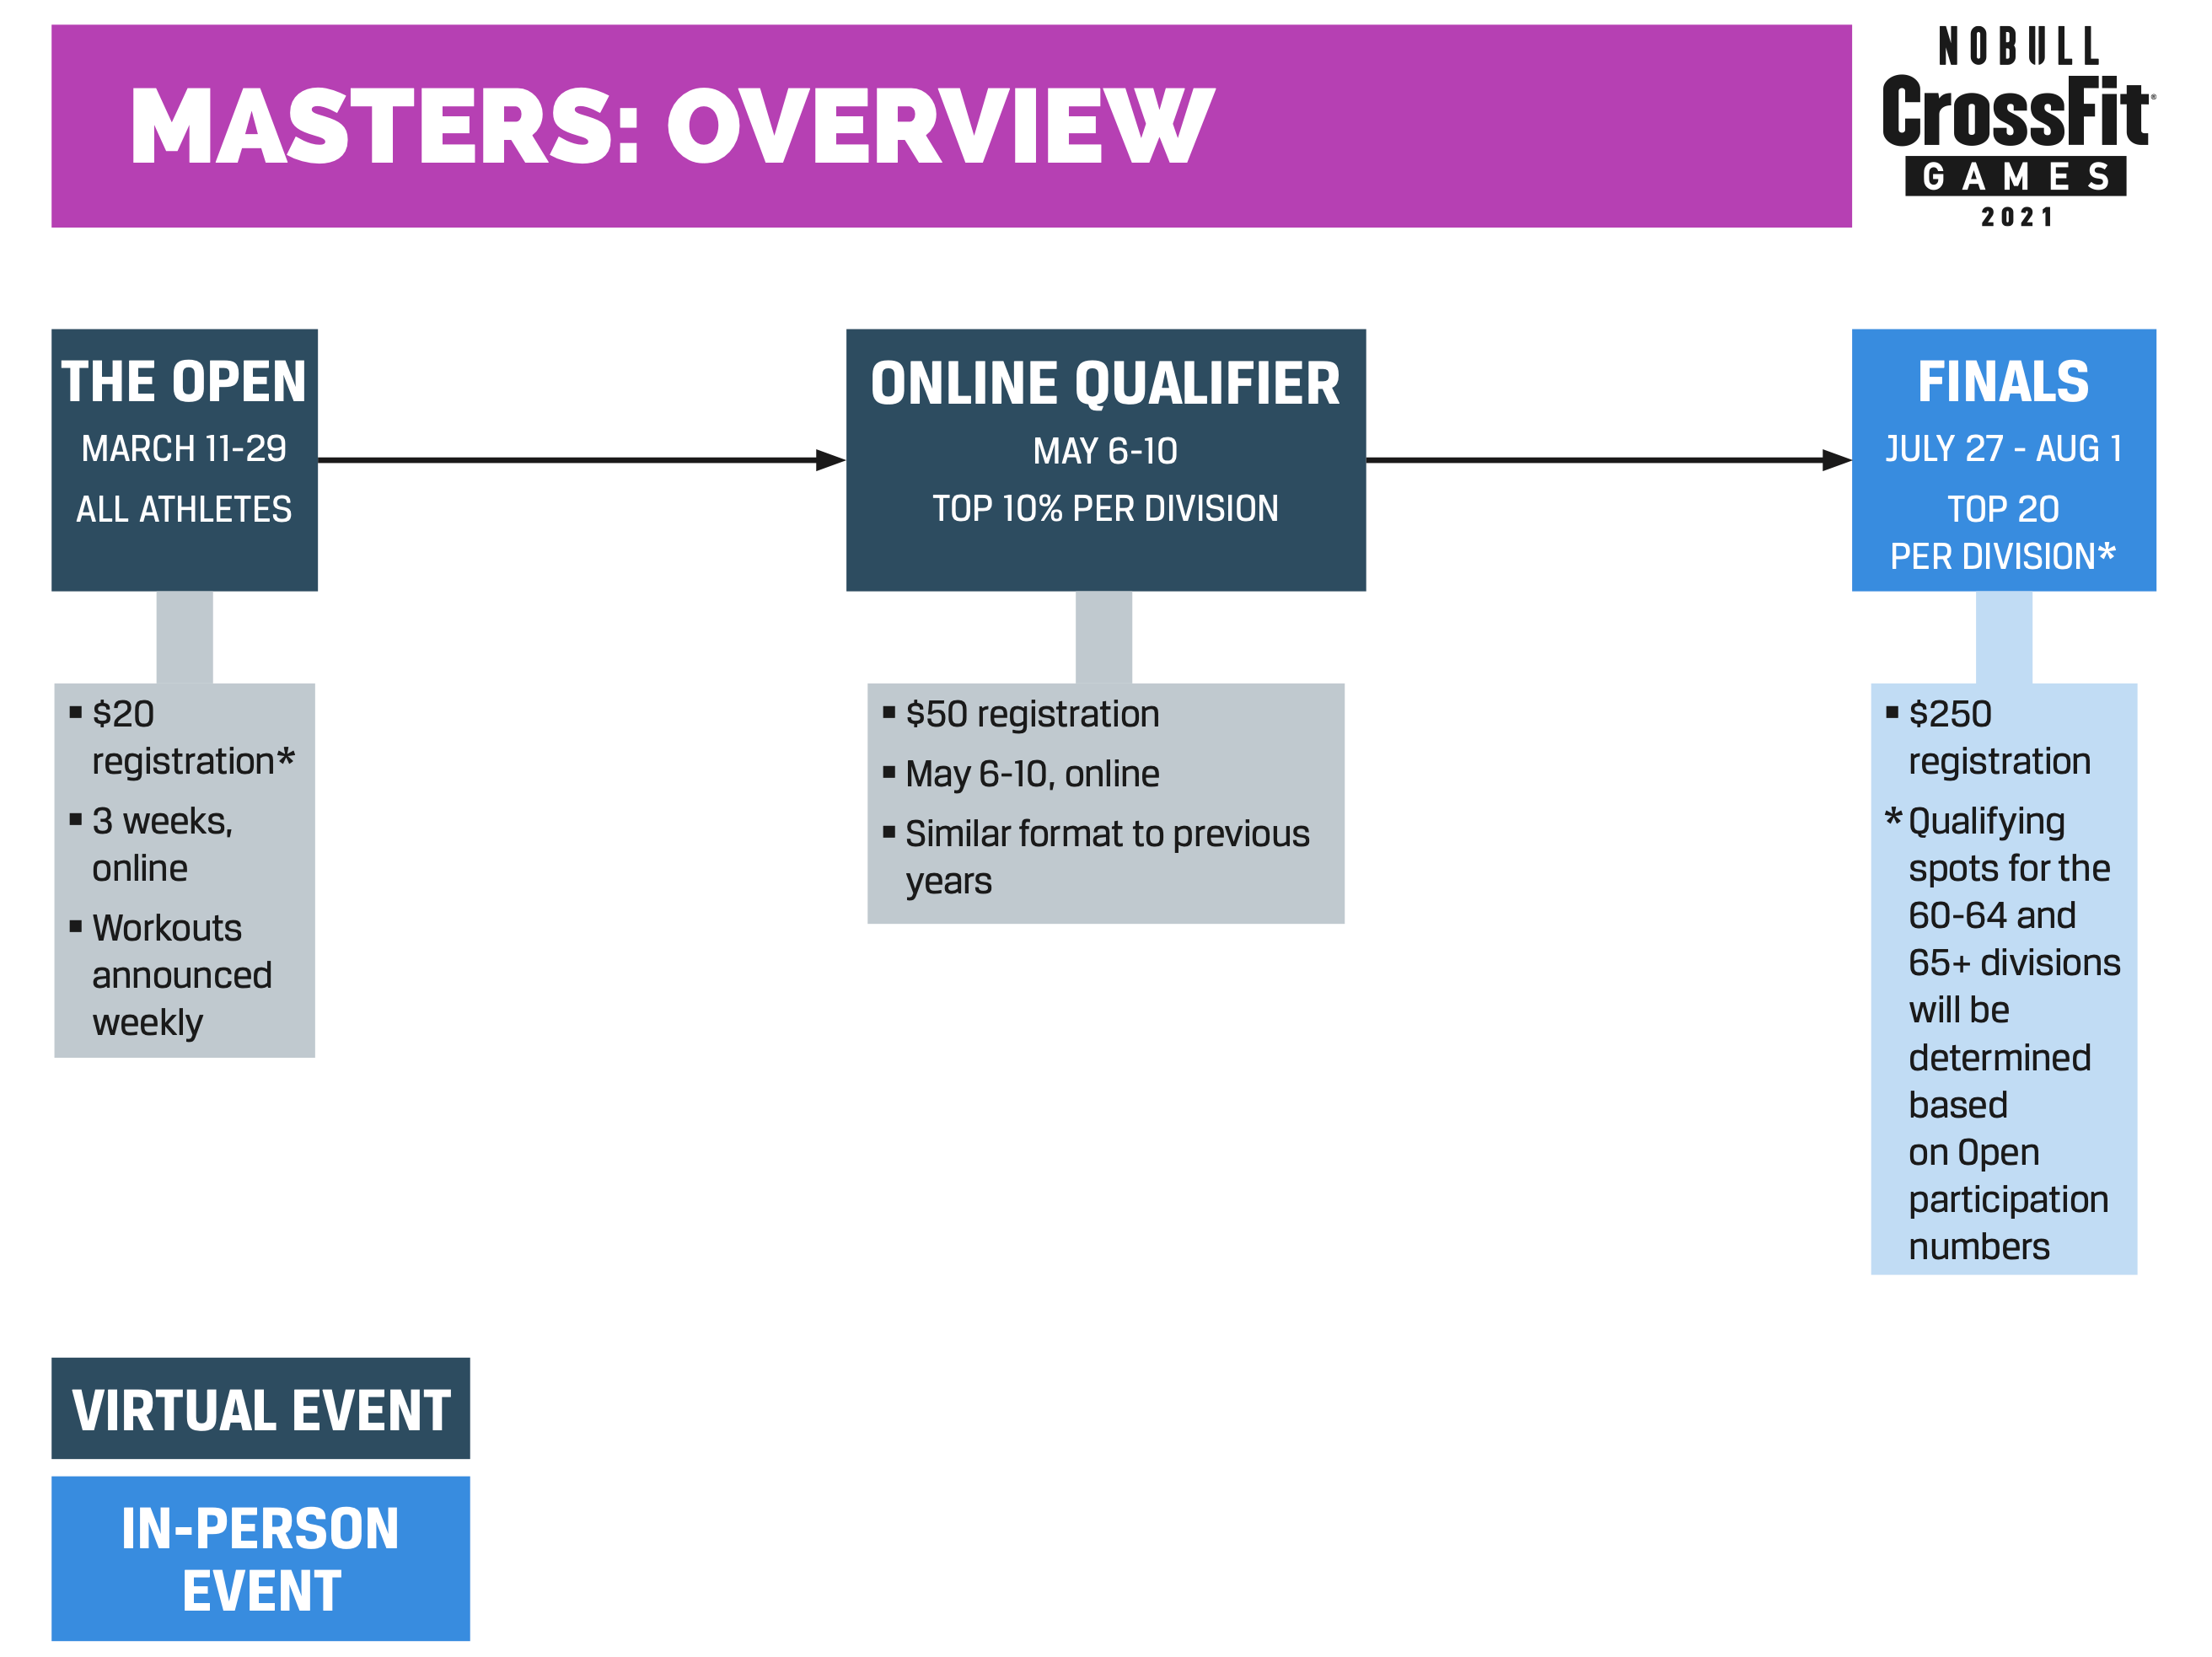 Masters Overview